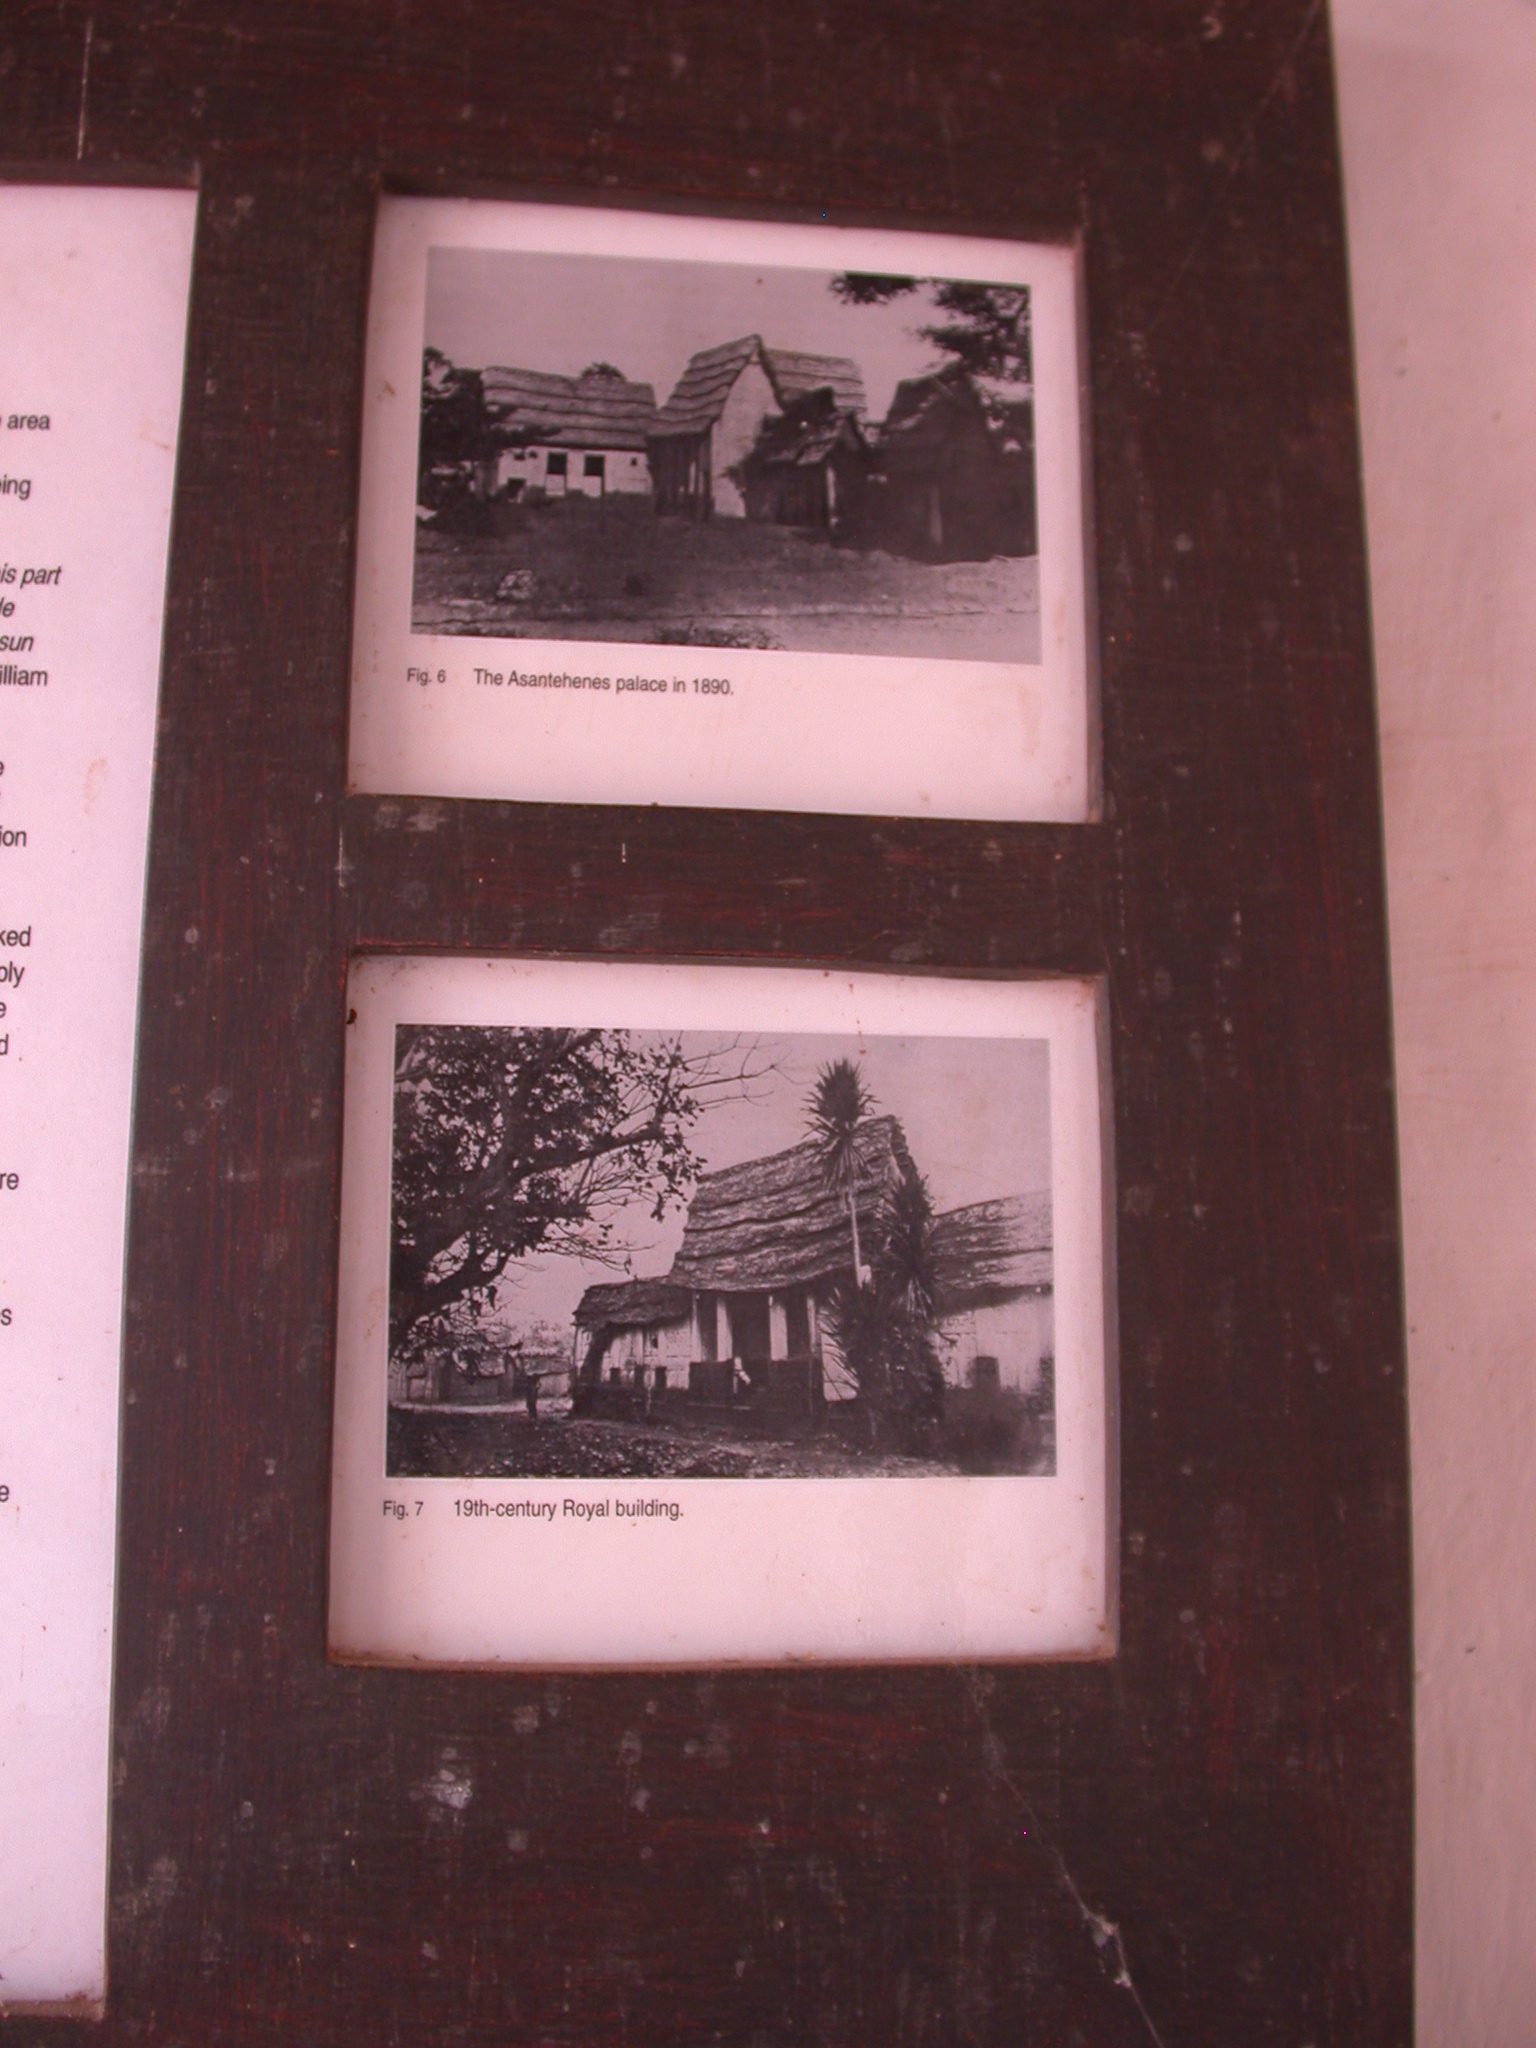 Photographs of Asante Royal Palace and Building, Asante Traditional Shrine at Ejisu-Besease, Ghana